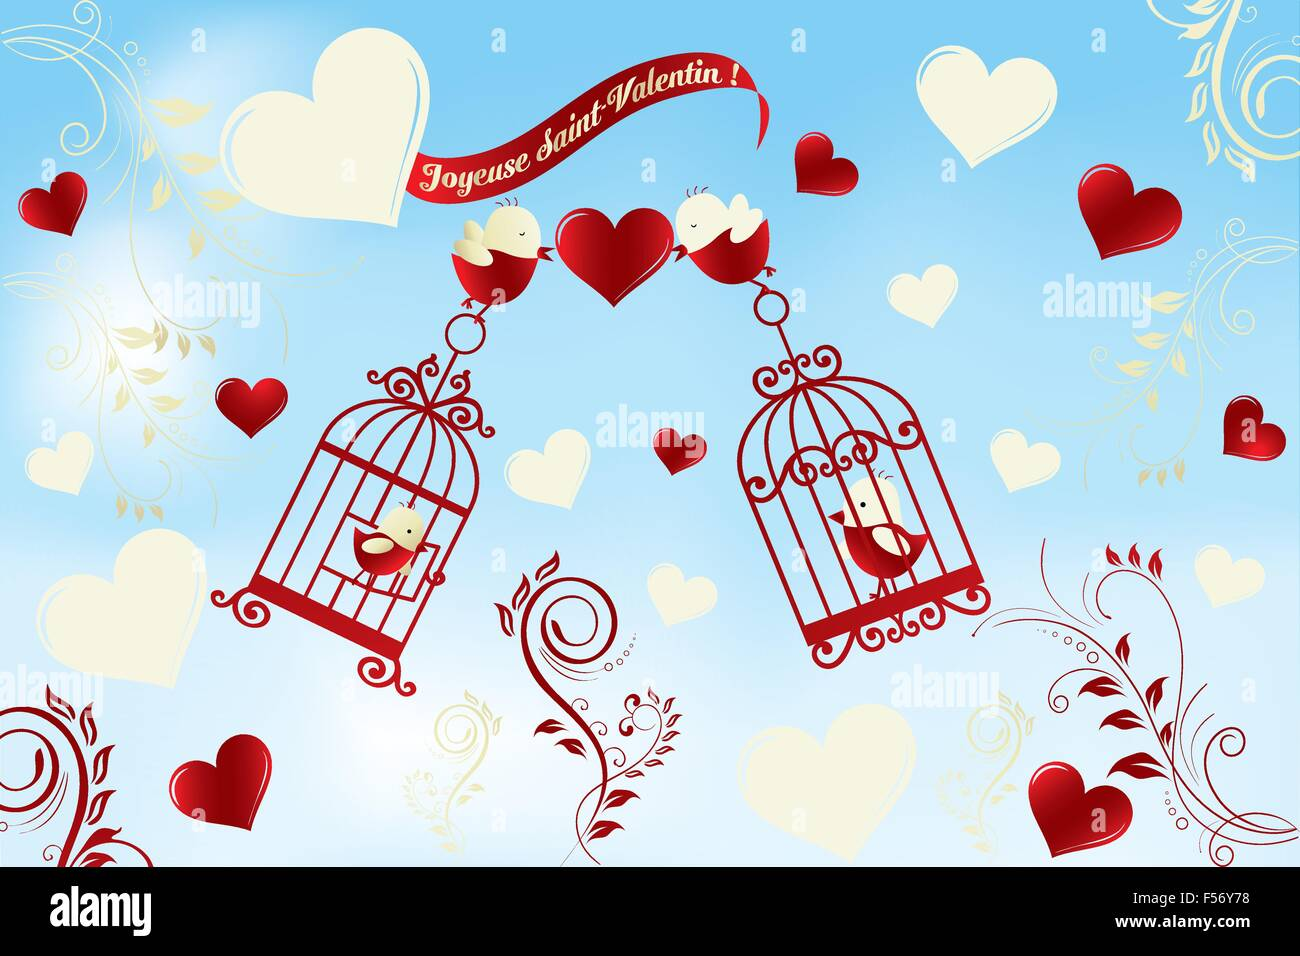 Table Saint Valentin dedans valentine's day card in french - joyeuse saint-valentin - birds in